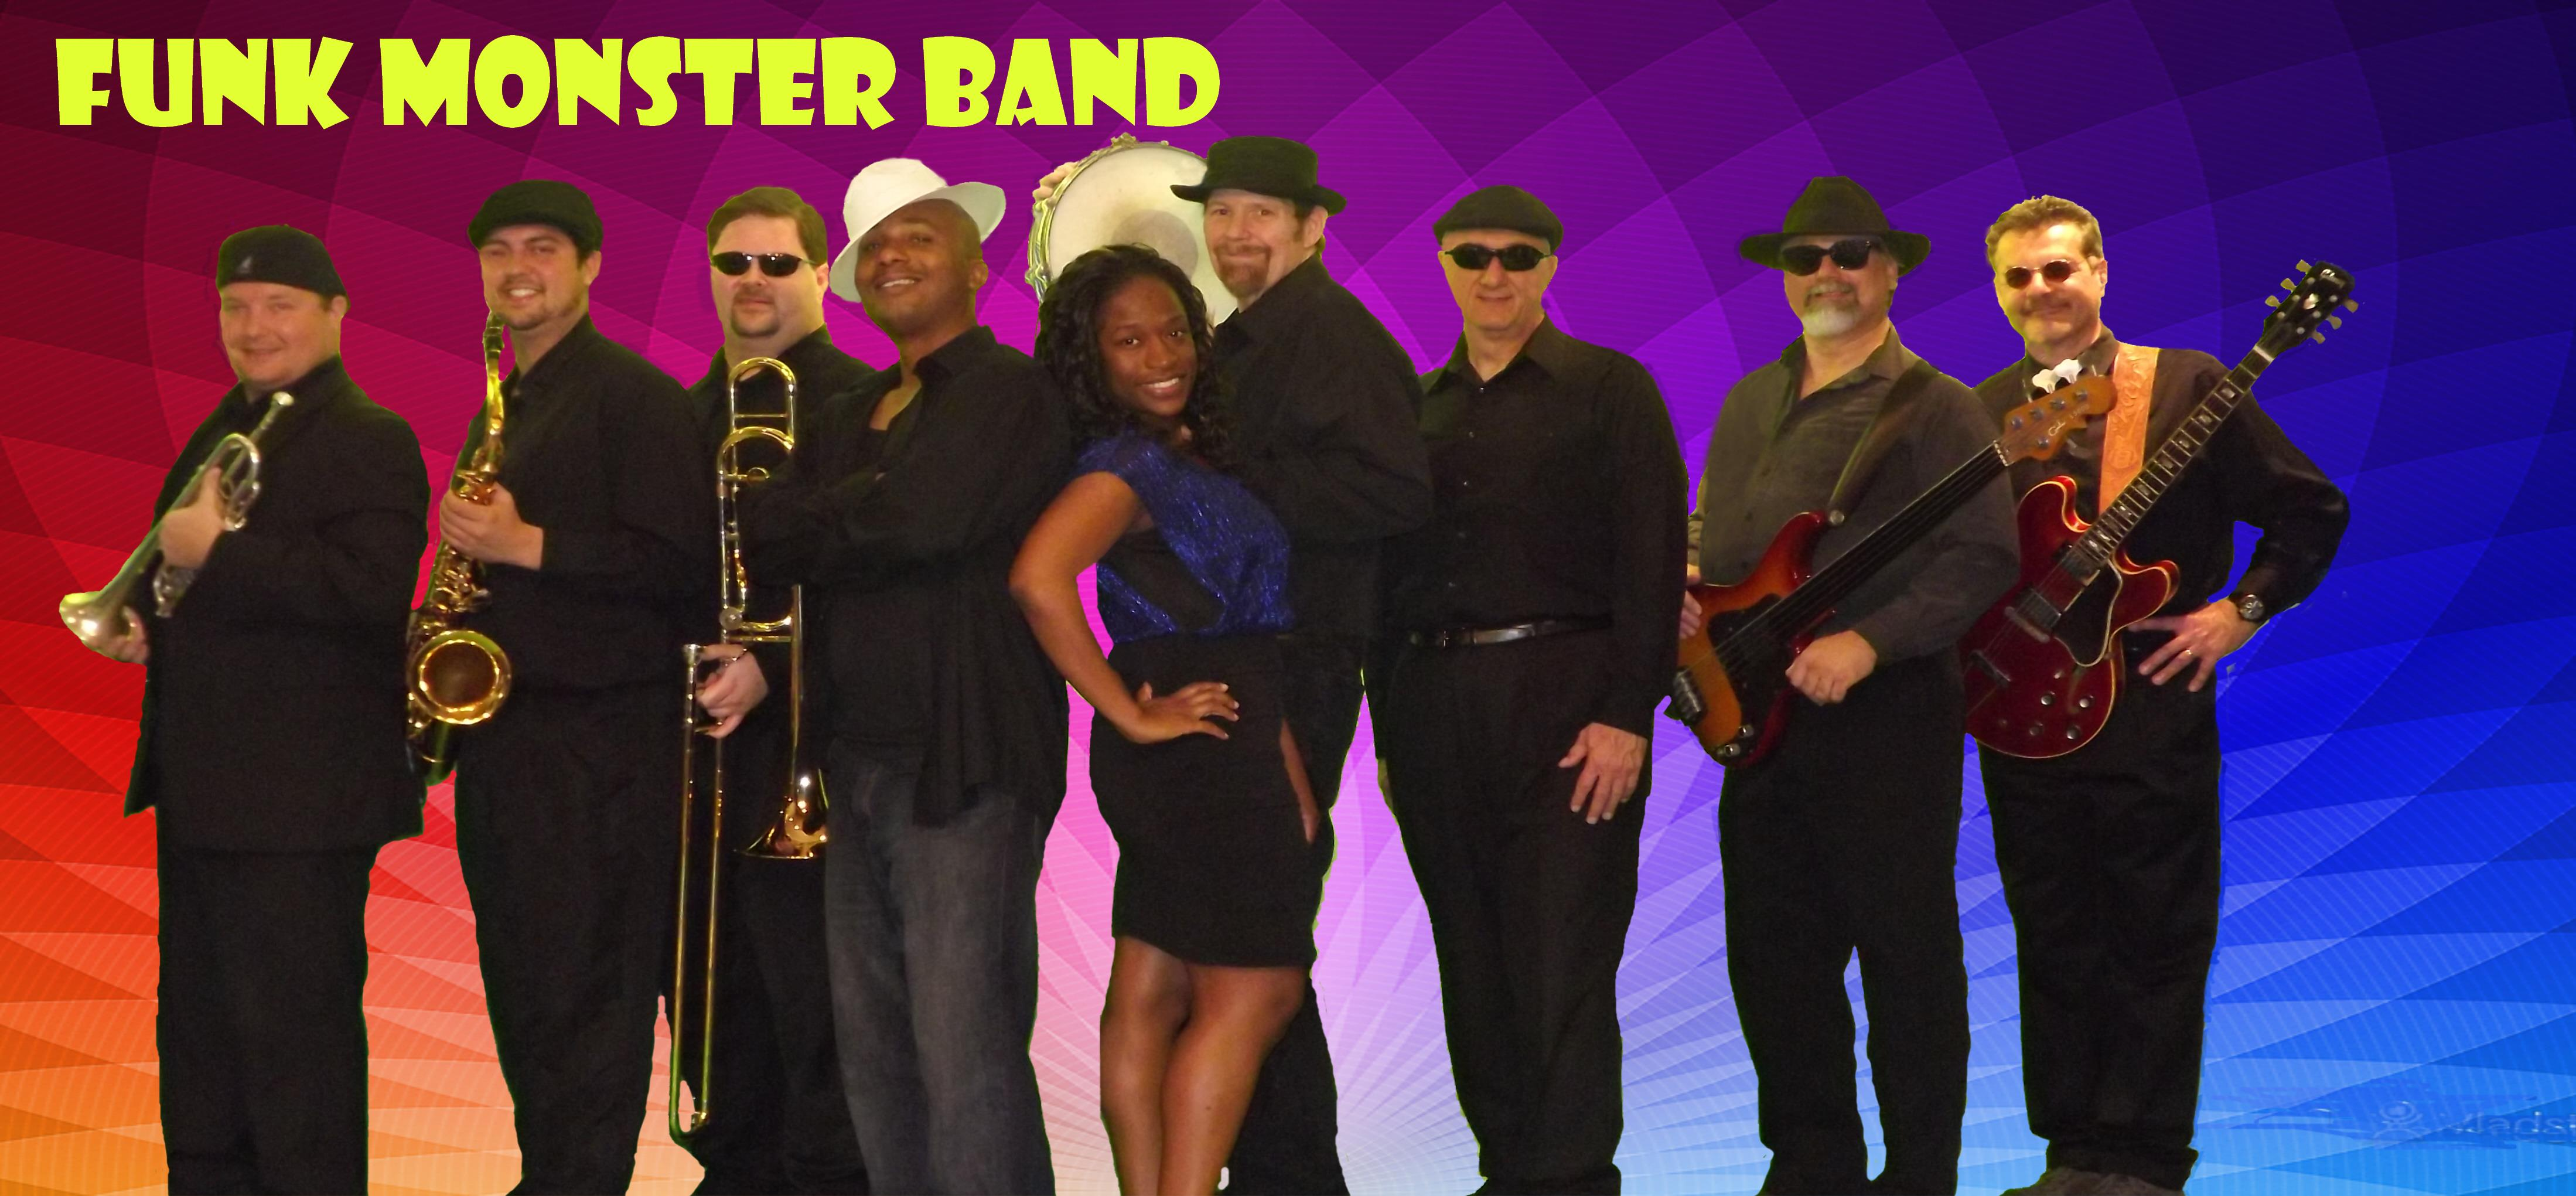 The Funk Monster Band